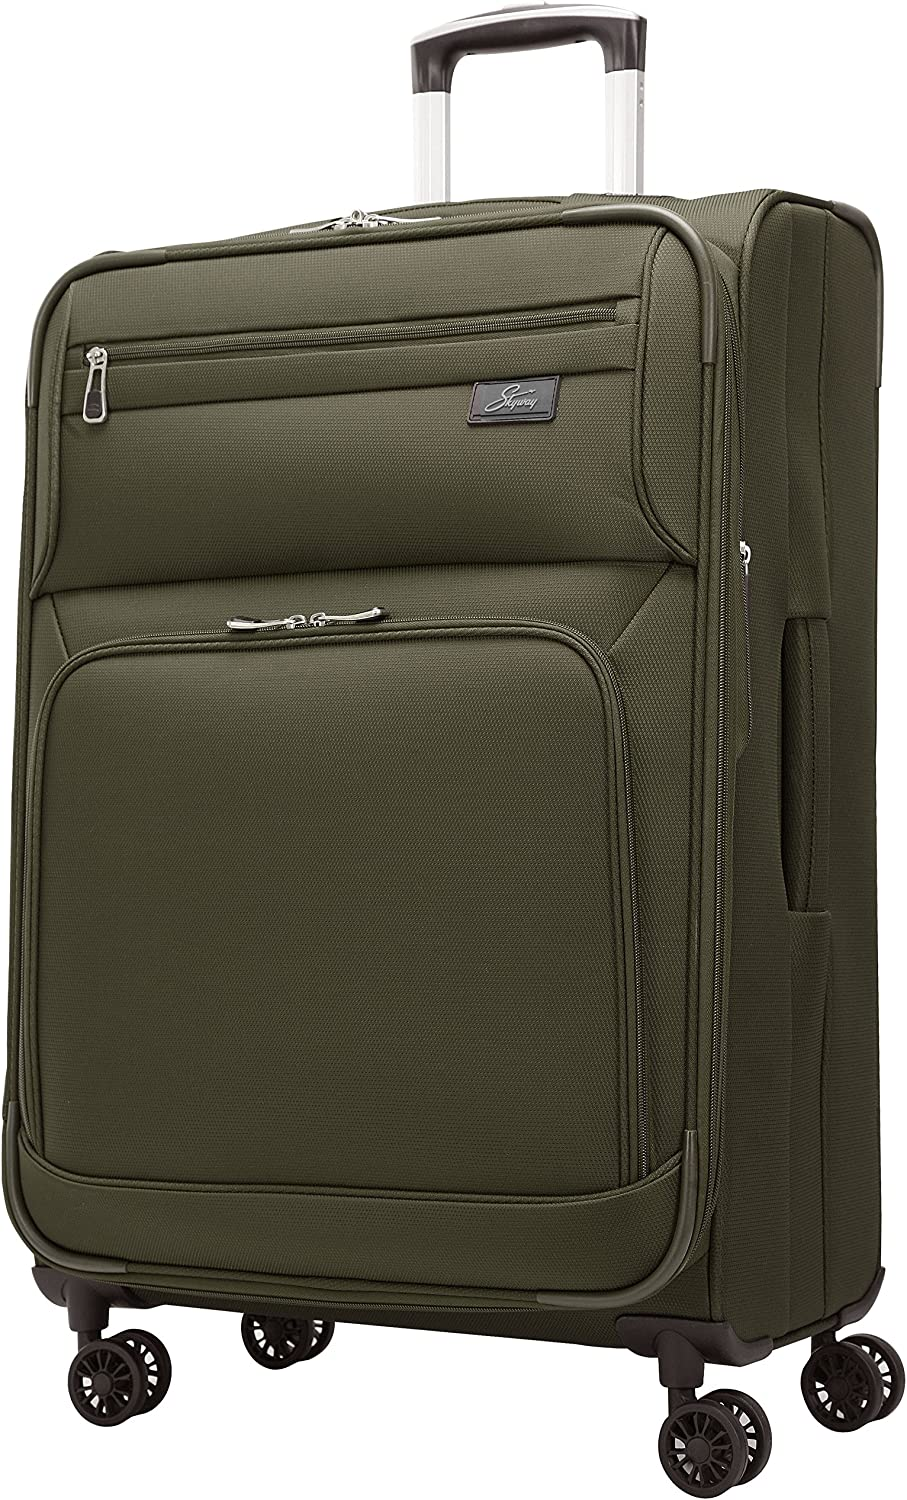 Forest Green Skyway Sigma 5.0 29-Inch 4 Wheel Expandable Upright